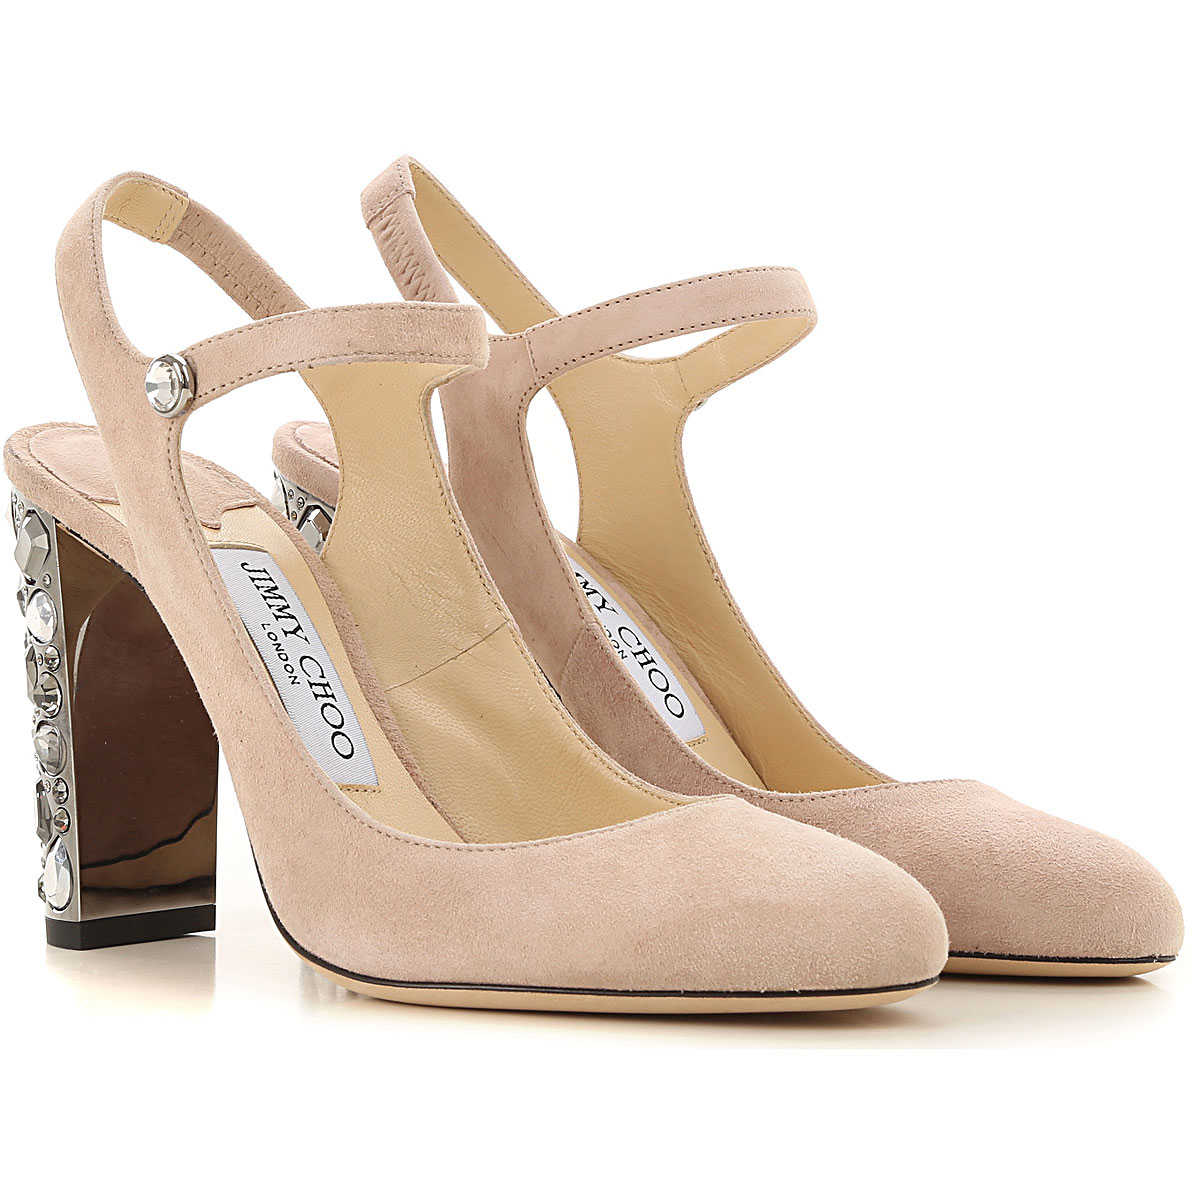 Jimmy Choo Pumps & High Heels for Women in Outlet Light pale pink USA - GOOFASH